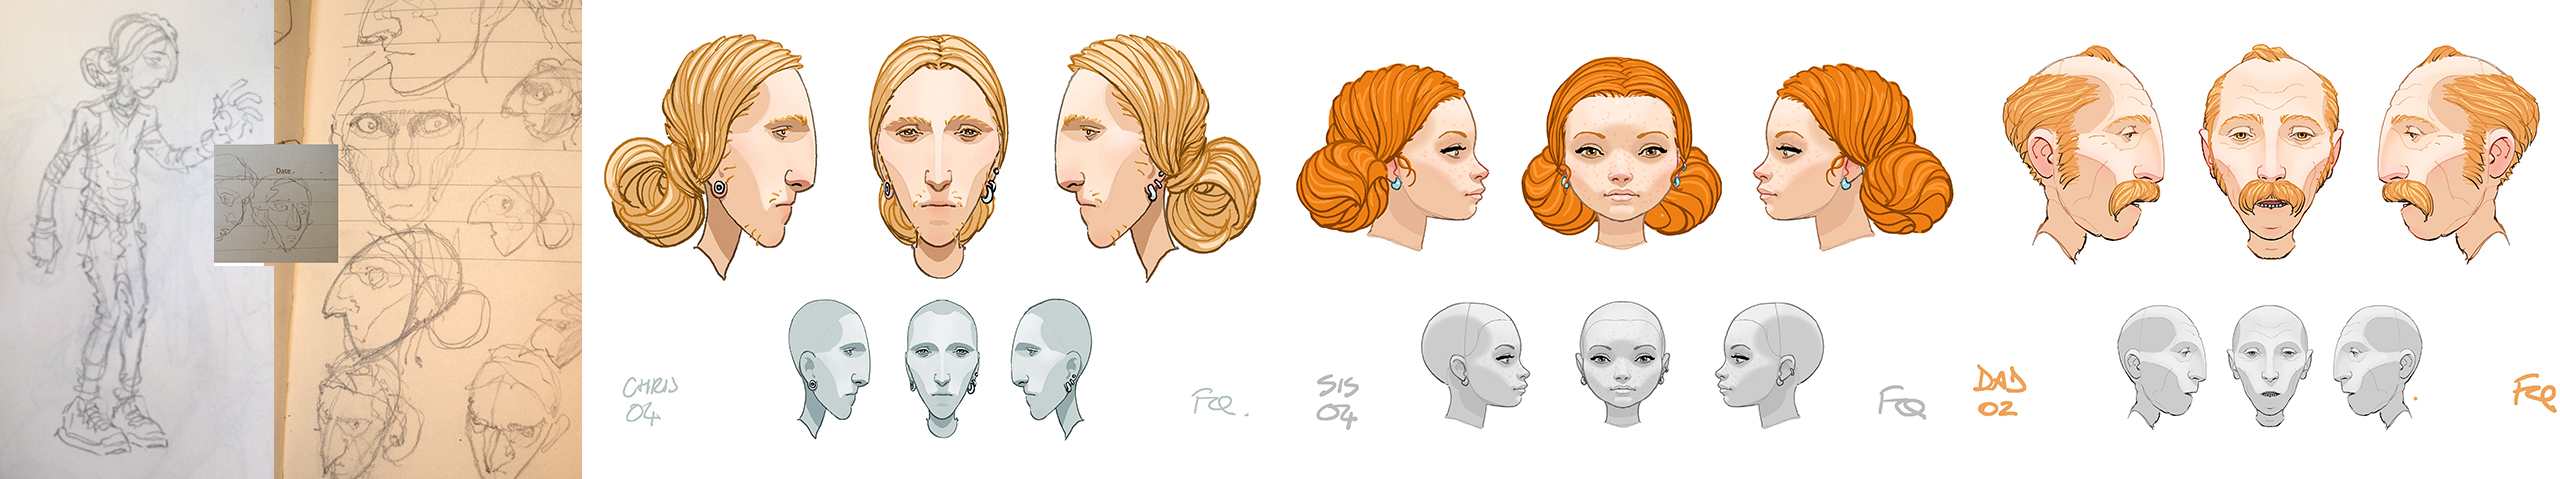 Designs for some of the film's characters.